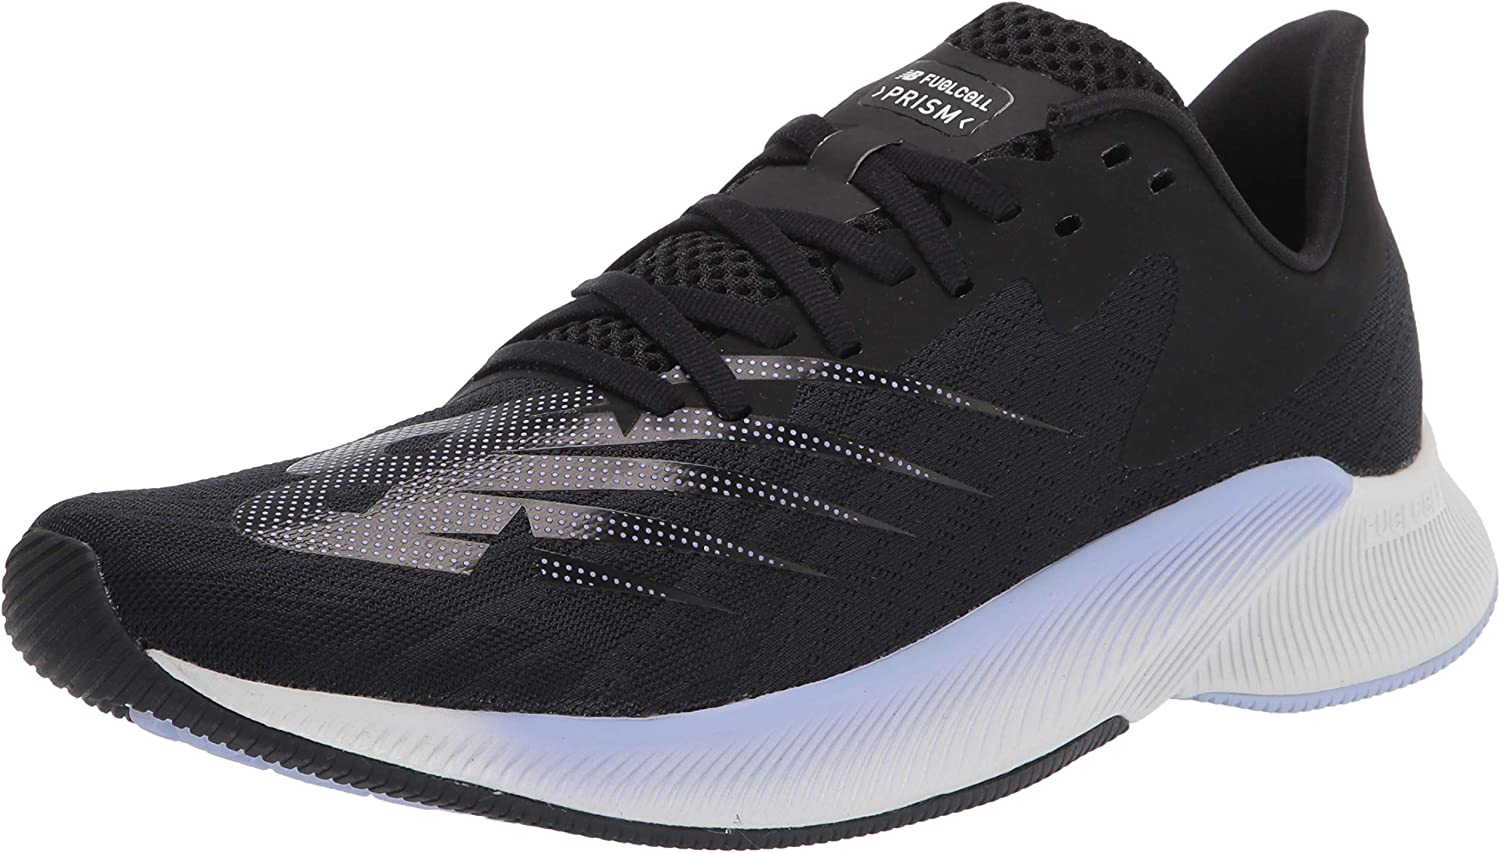 New Balance Women's FuelCell OFFicial V1 Shoe Prism Selling and selling Running